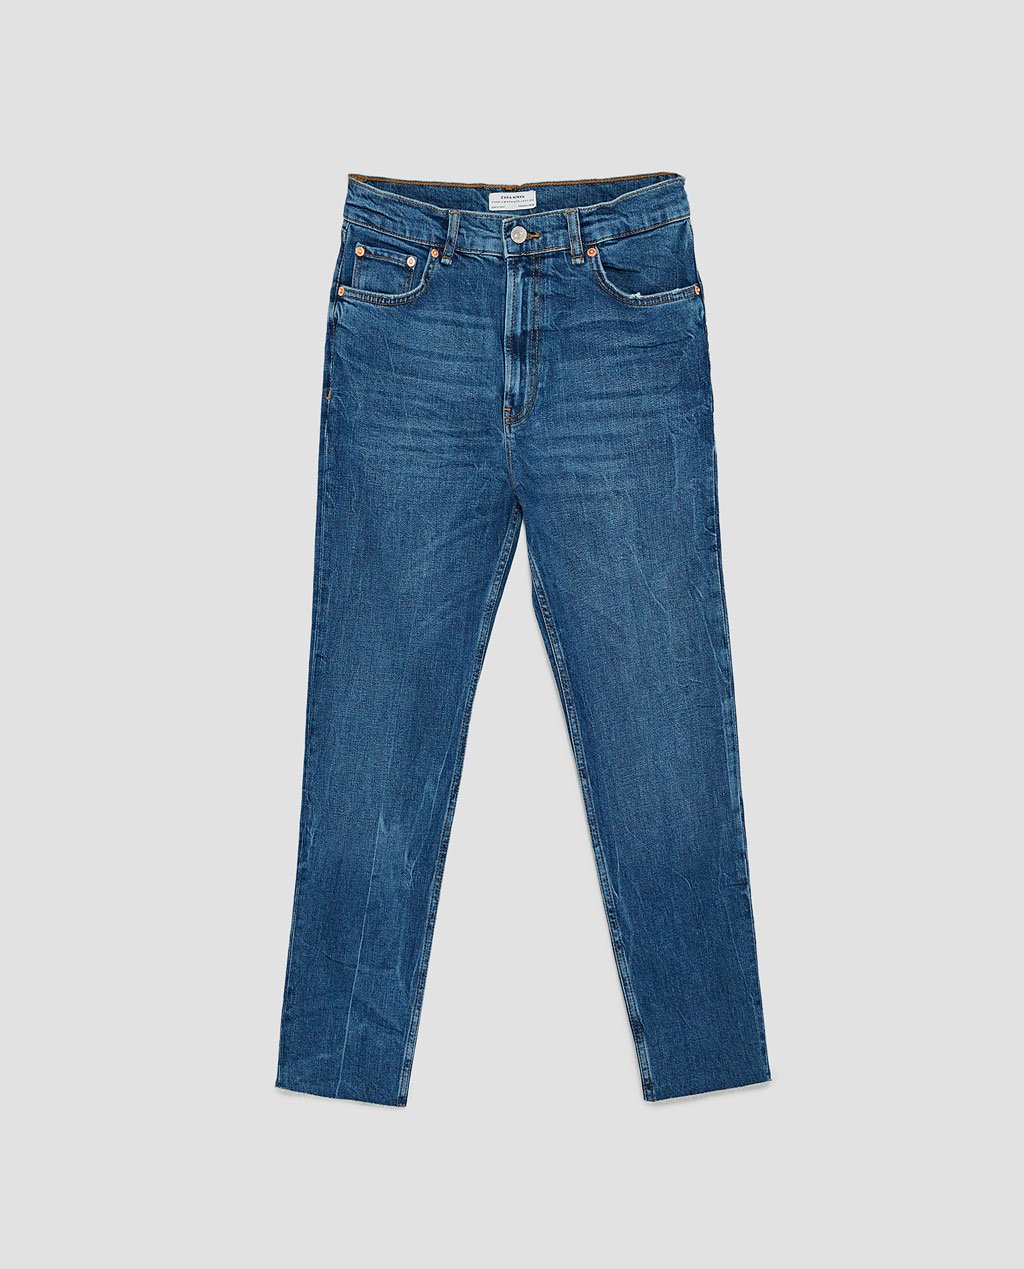 Zara's version of the relaxed fit denim. Available in a multitude of washes but I like this classic '90s Pacific blue. They pack a lot of nostalgia for me and work perfectly for the season.